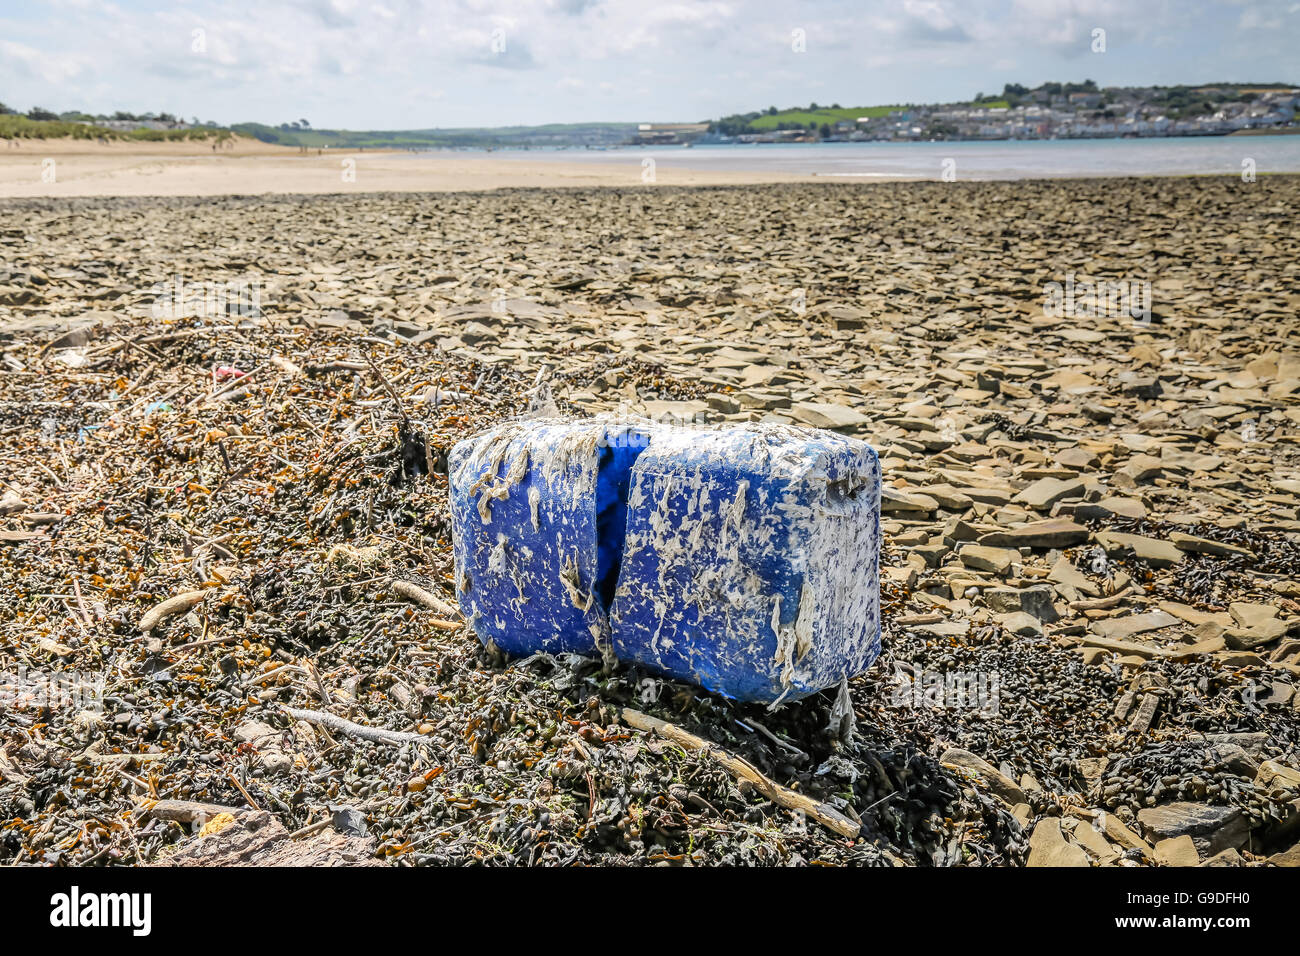 A blue plastic container covered in weeds washed up on a beach in the UK - Stock Image